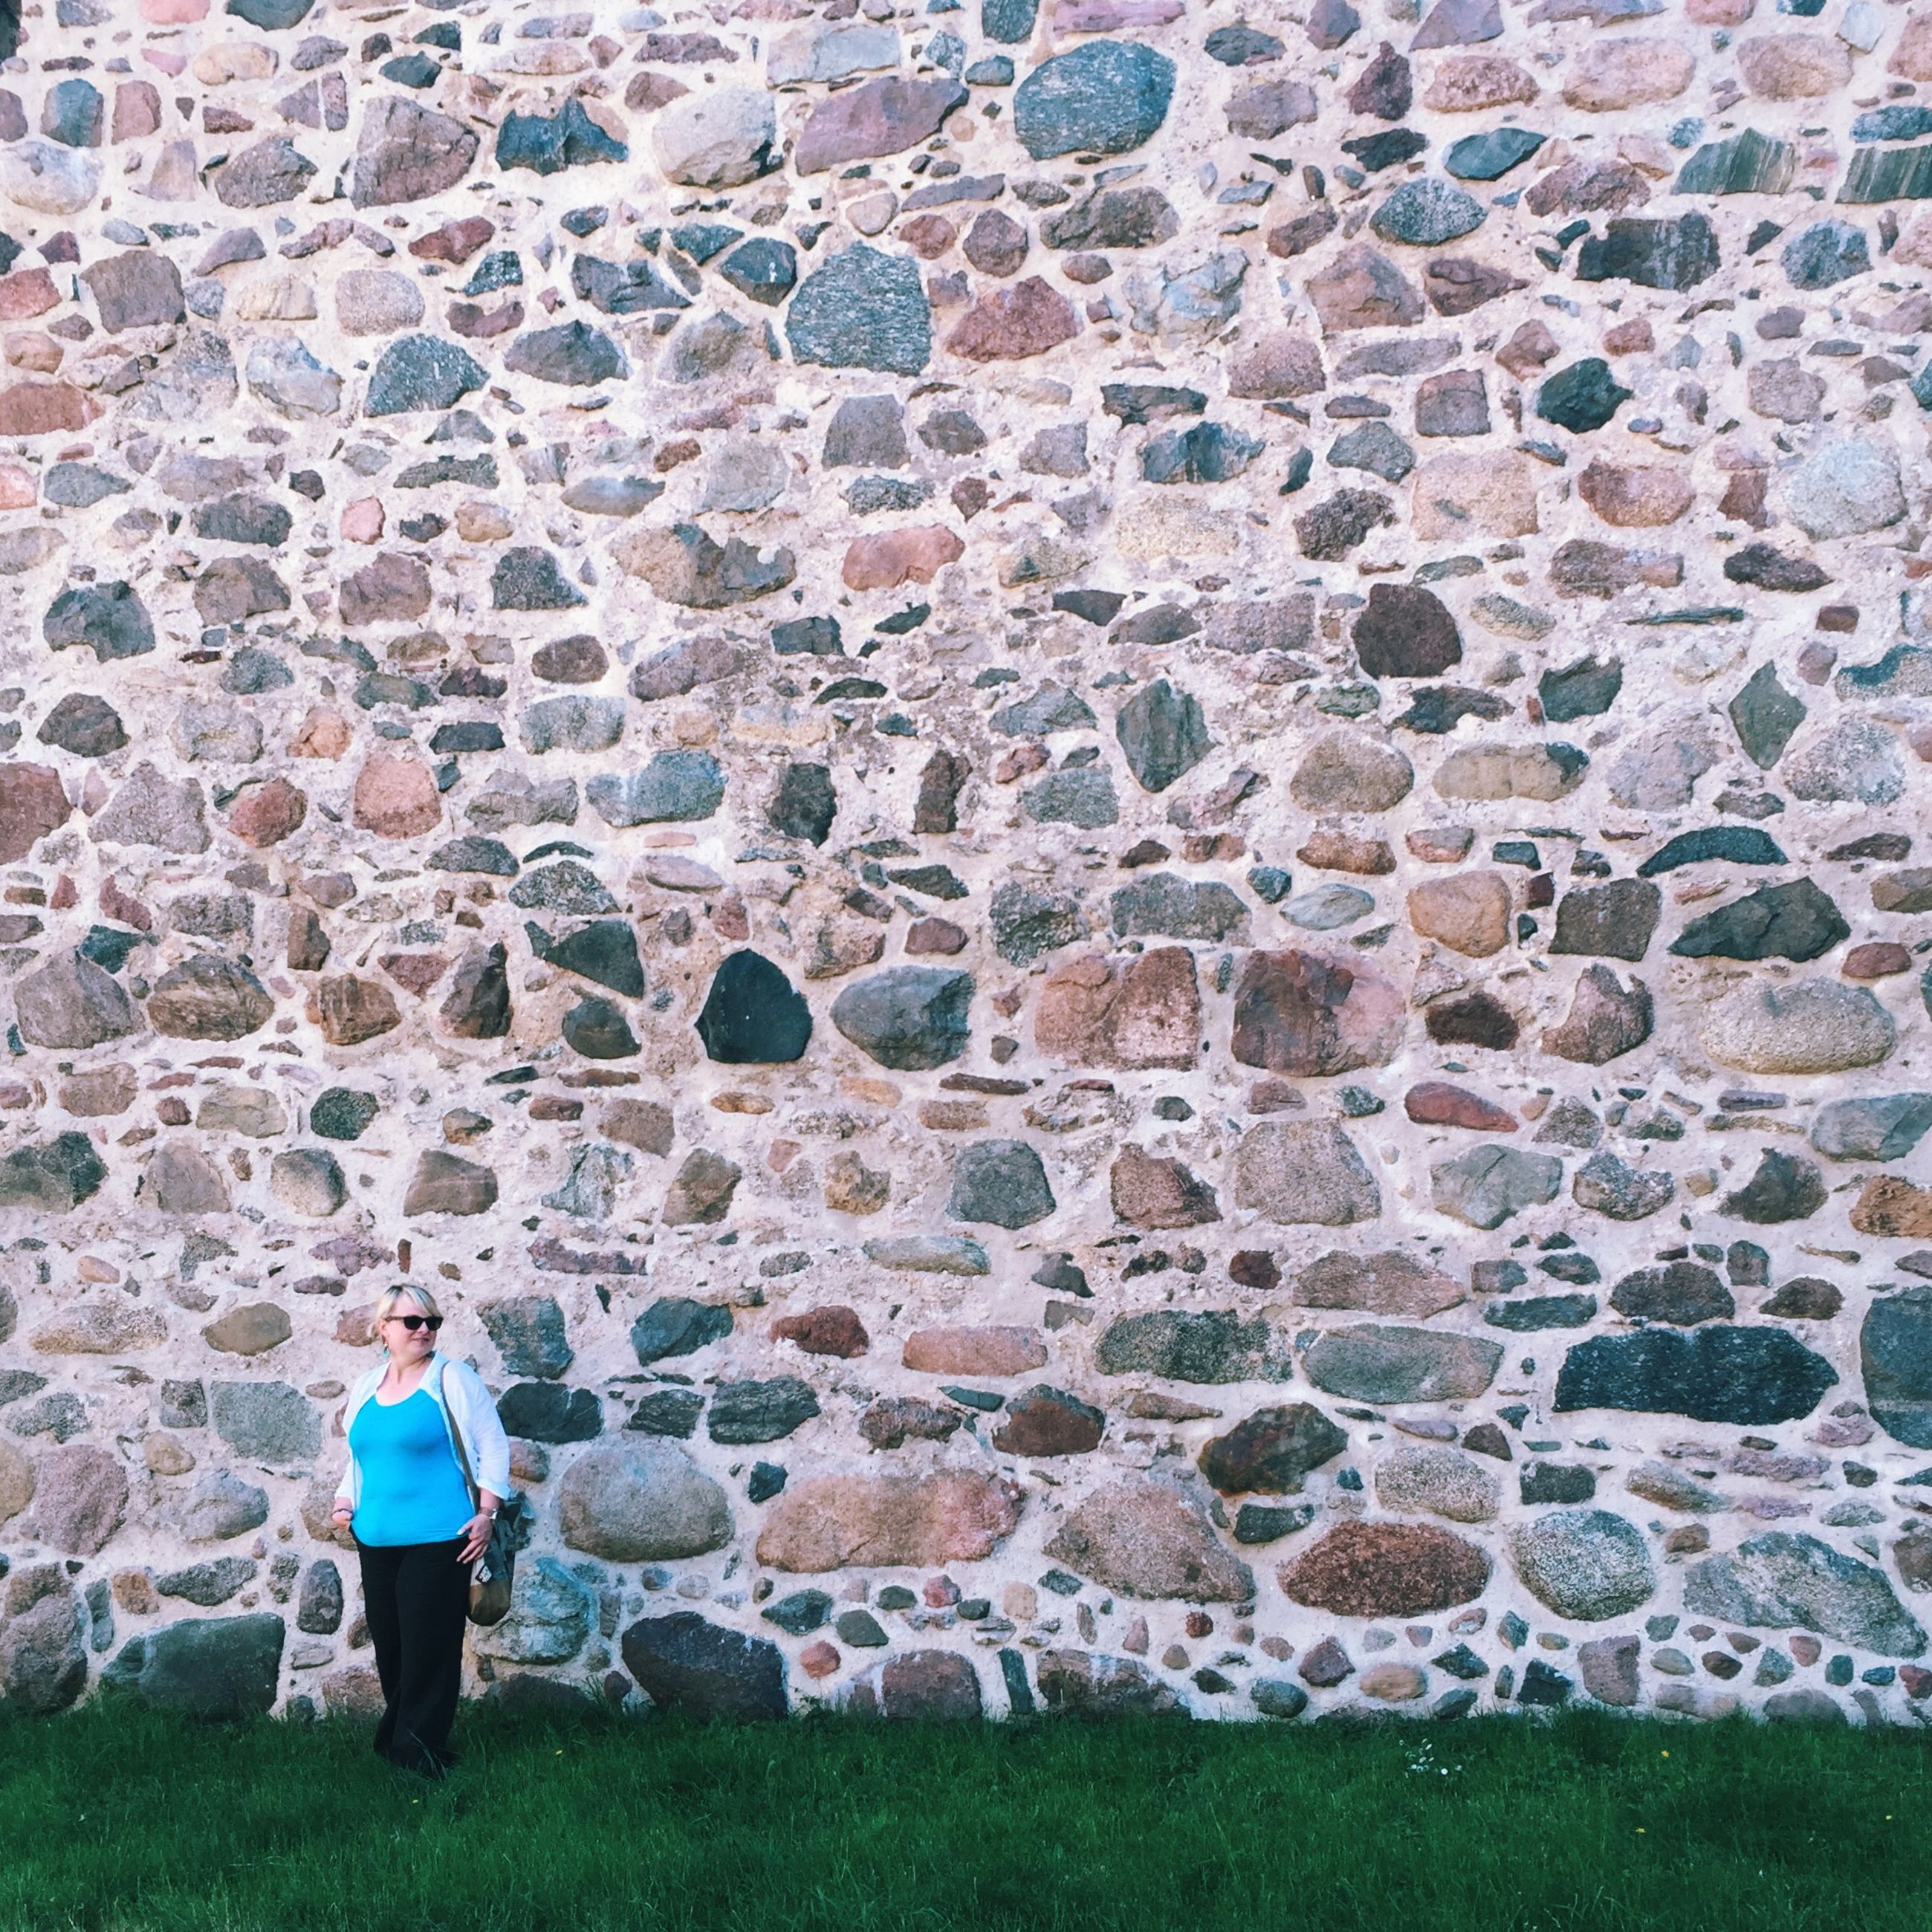 lifestyles, leisure activity, casual clothing, full length, standing, person, grass, men, rear view, wall - building feature, built structure, architecture, walking, building exterior, day, outdoors, stone wall, brick wall